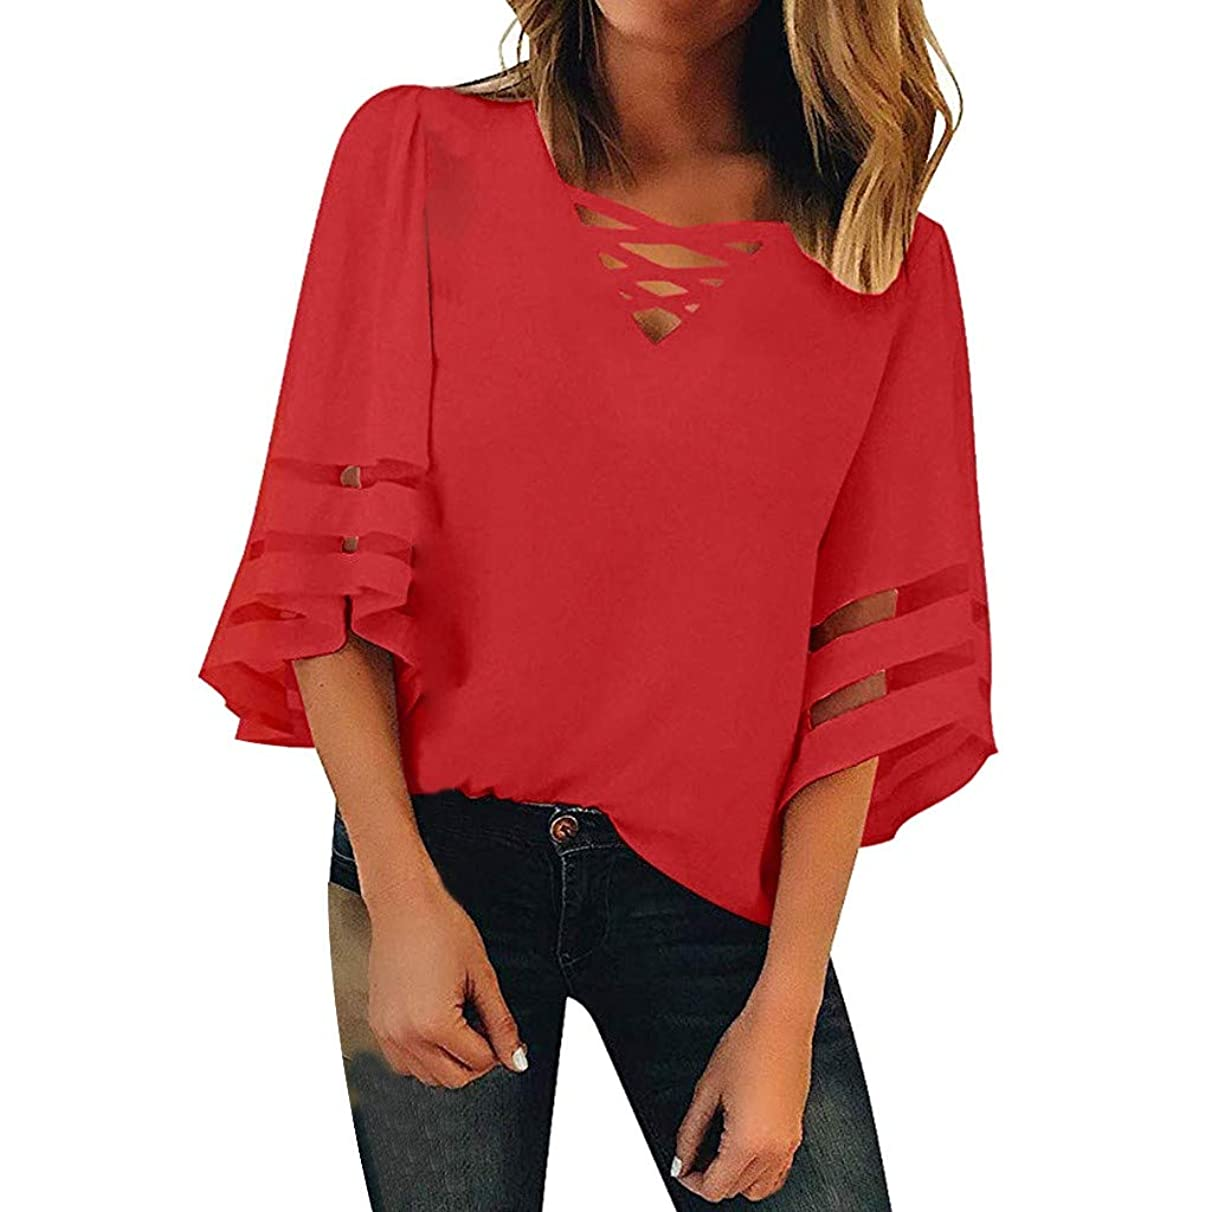 Mimfor Women Button V Neck Mesh Panel Blouse 3/4 Bell Sleeve Loose Top Shirt